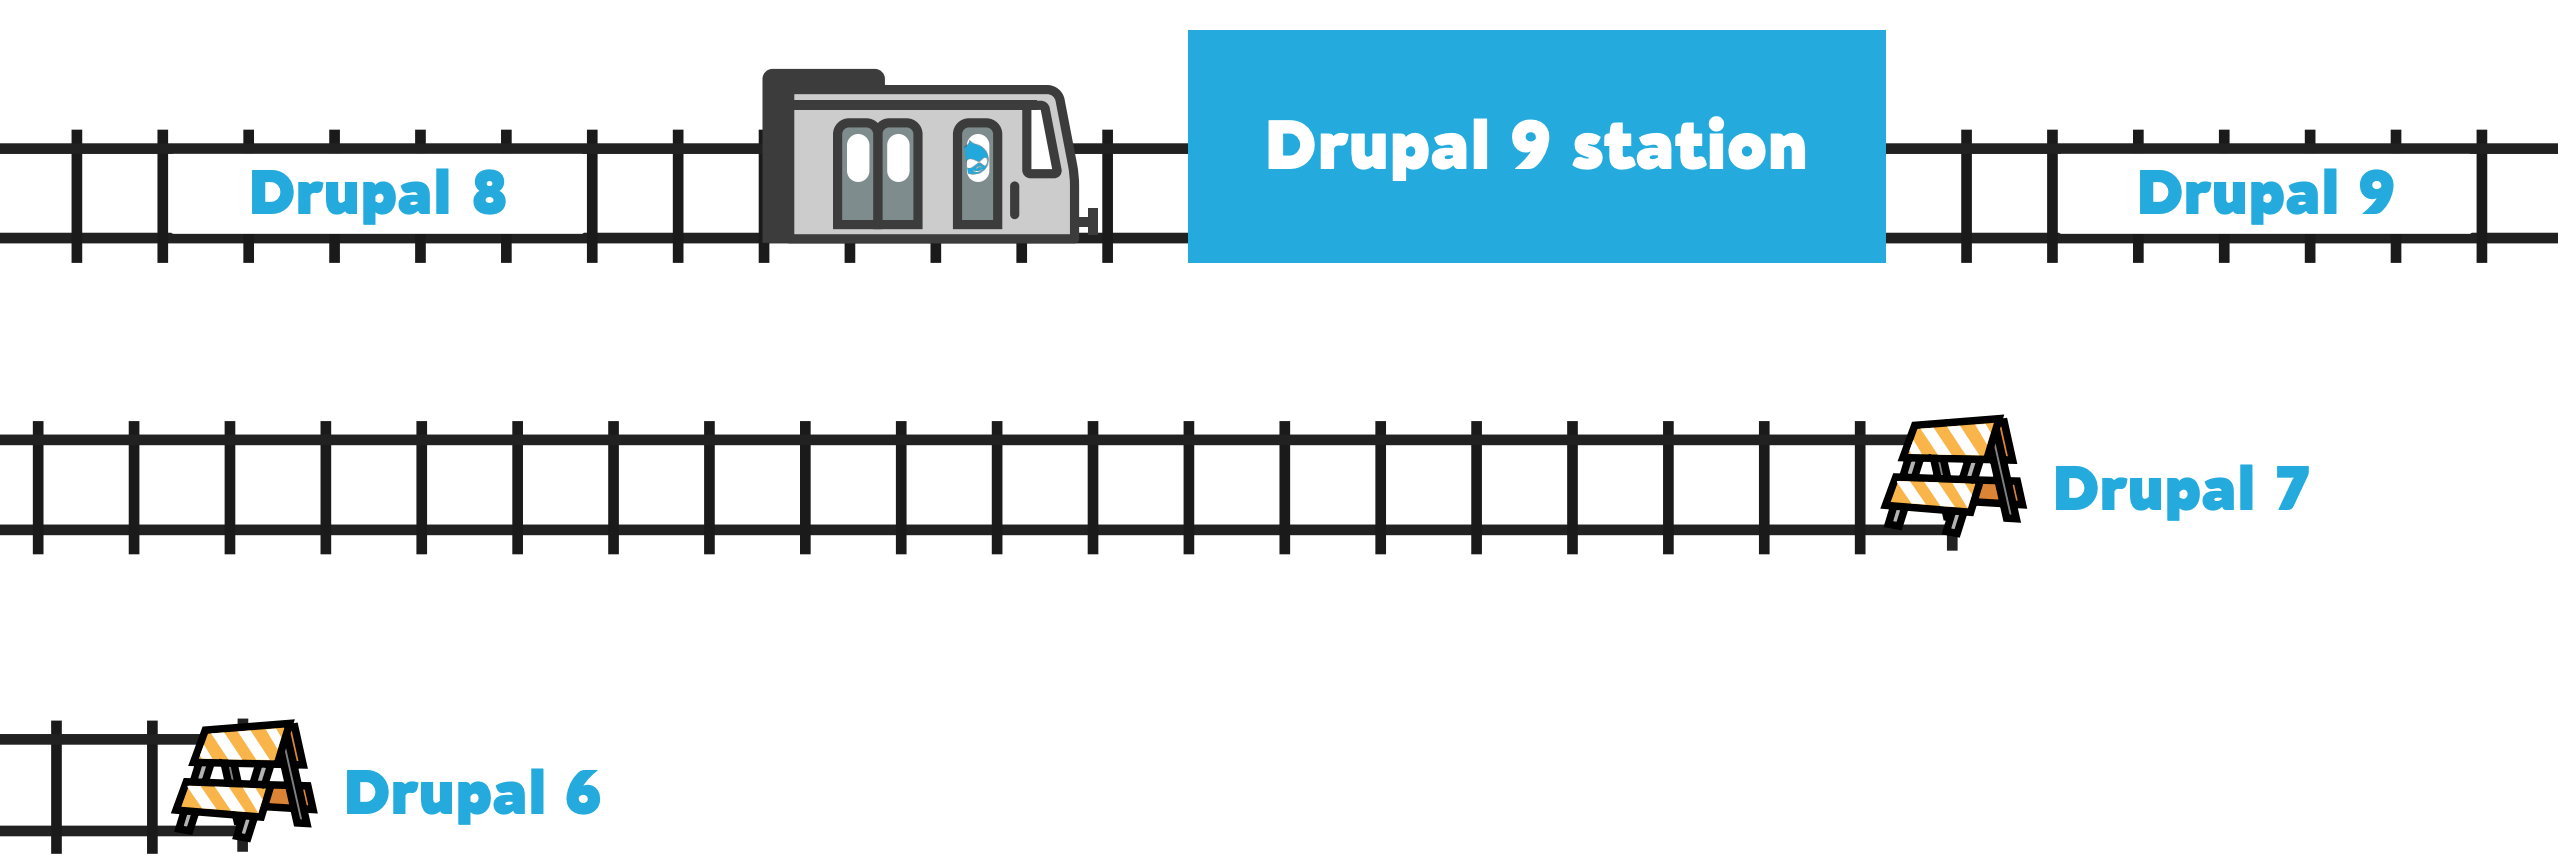 Different train tracks are used to describe the difference between various Drupal versions.